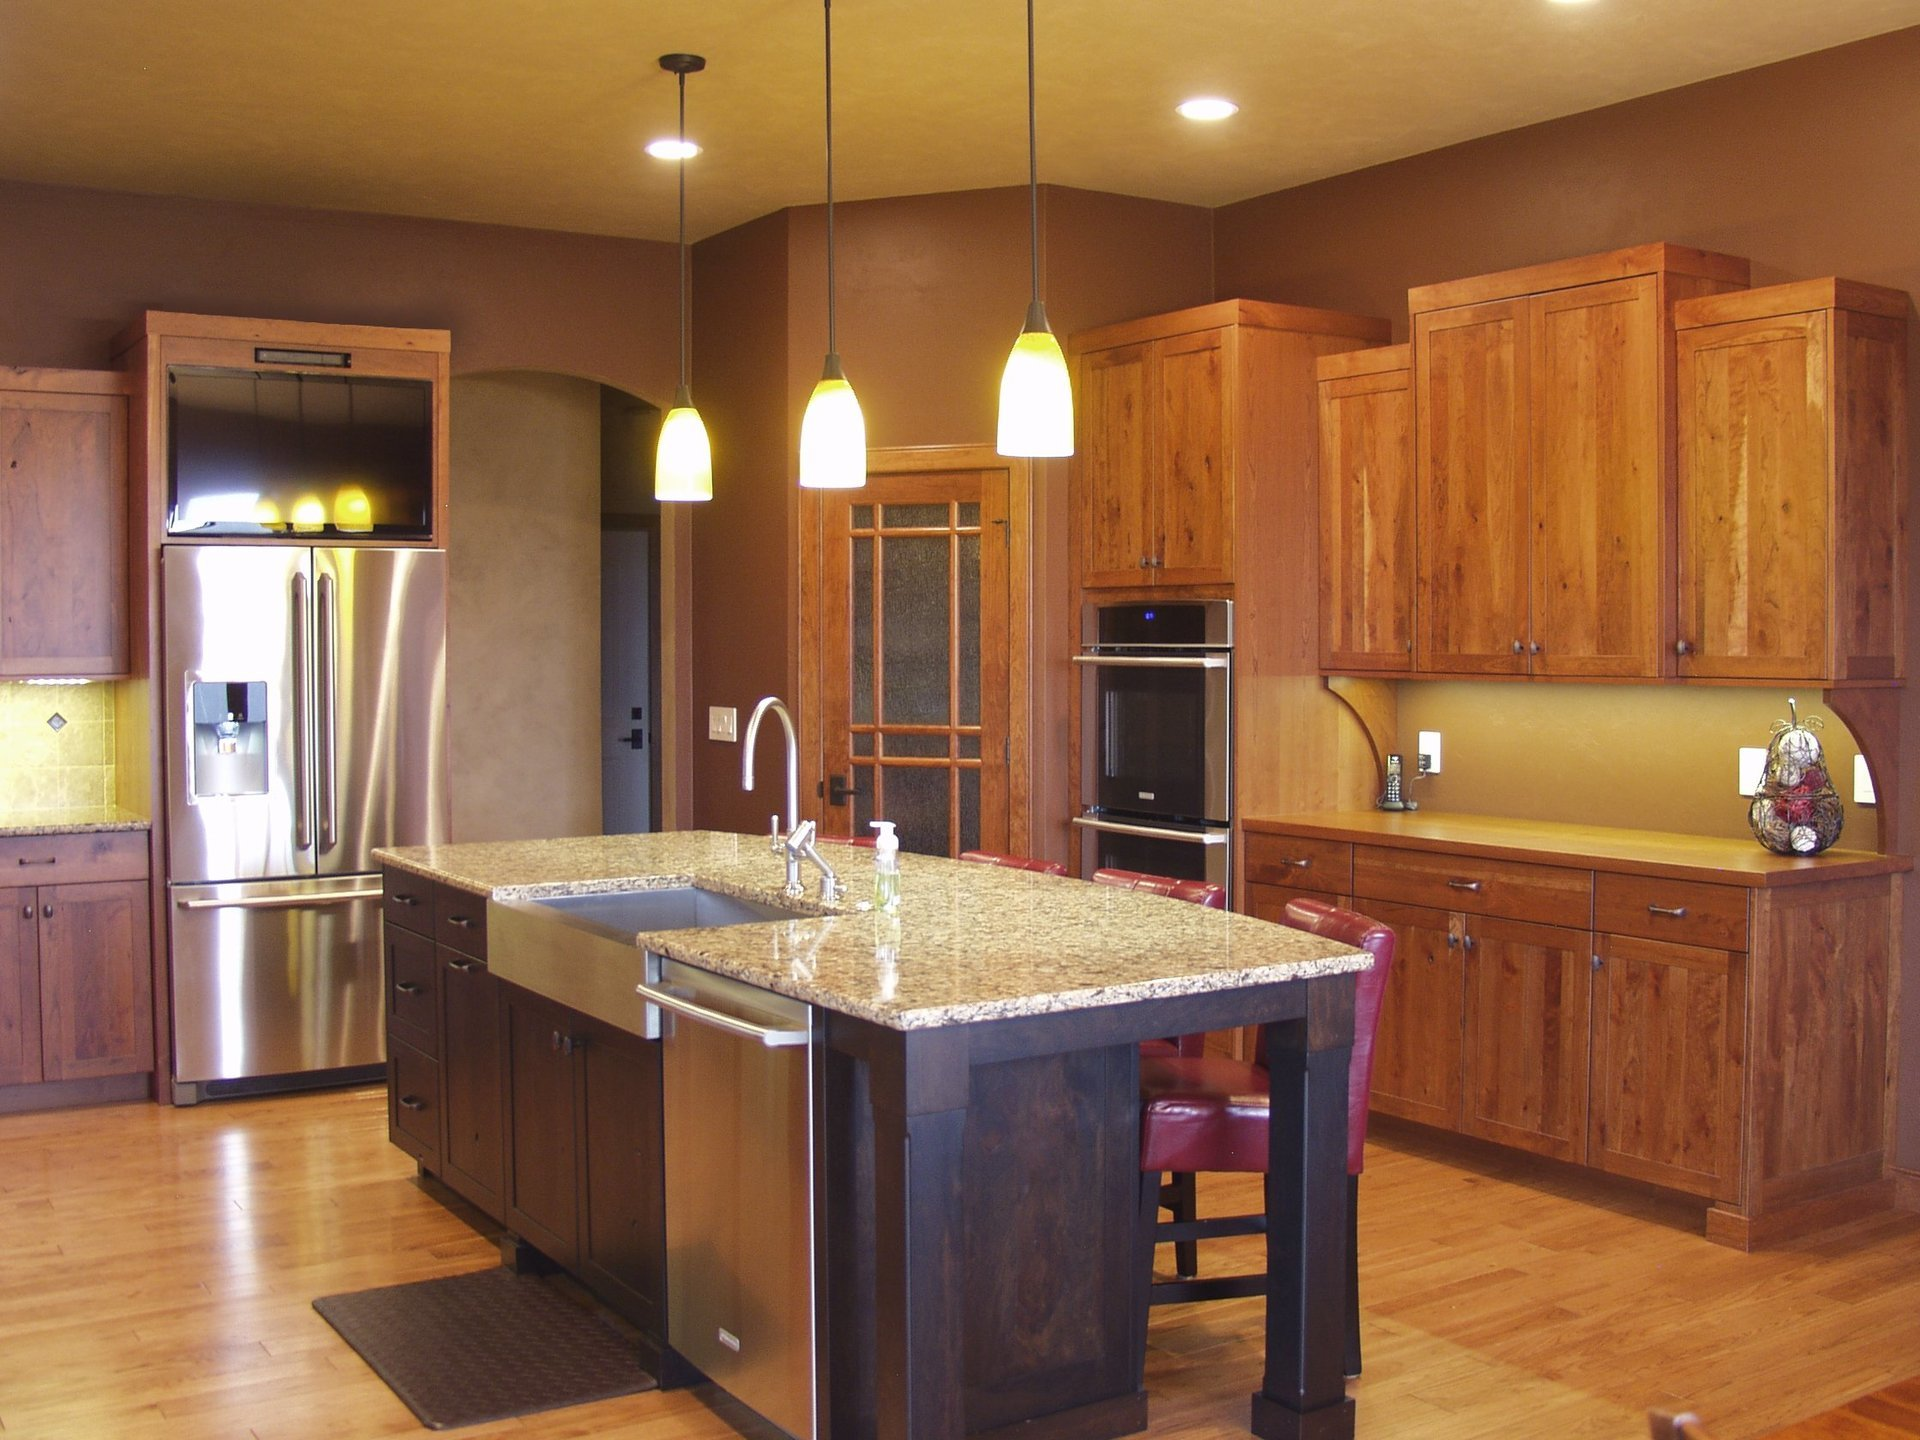 Featherstone Cabinetry & Design image 8